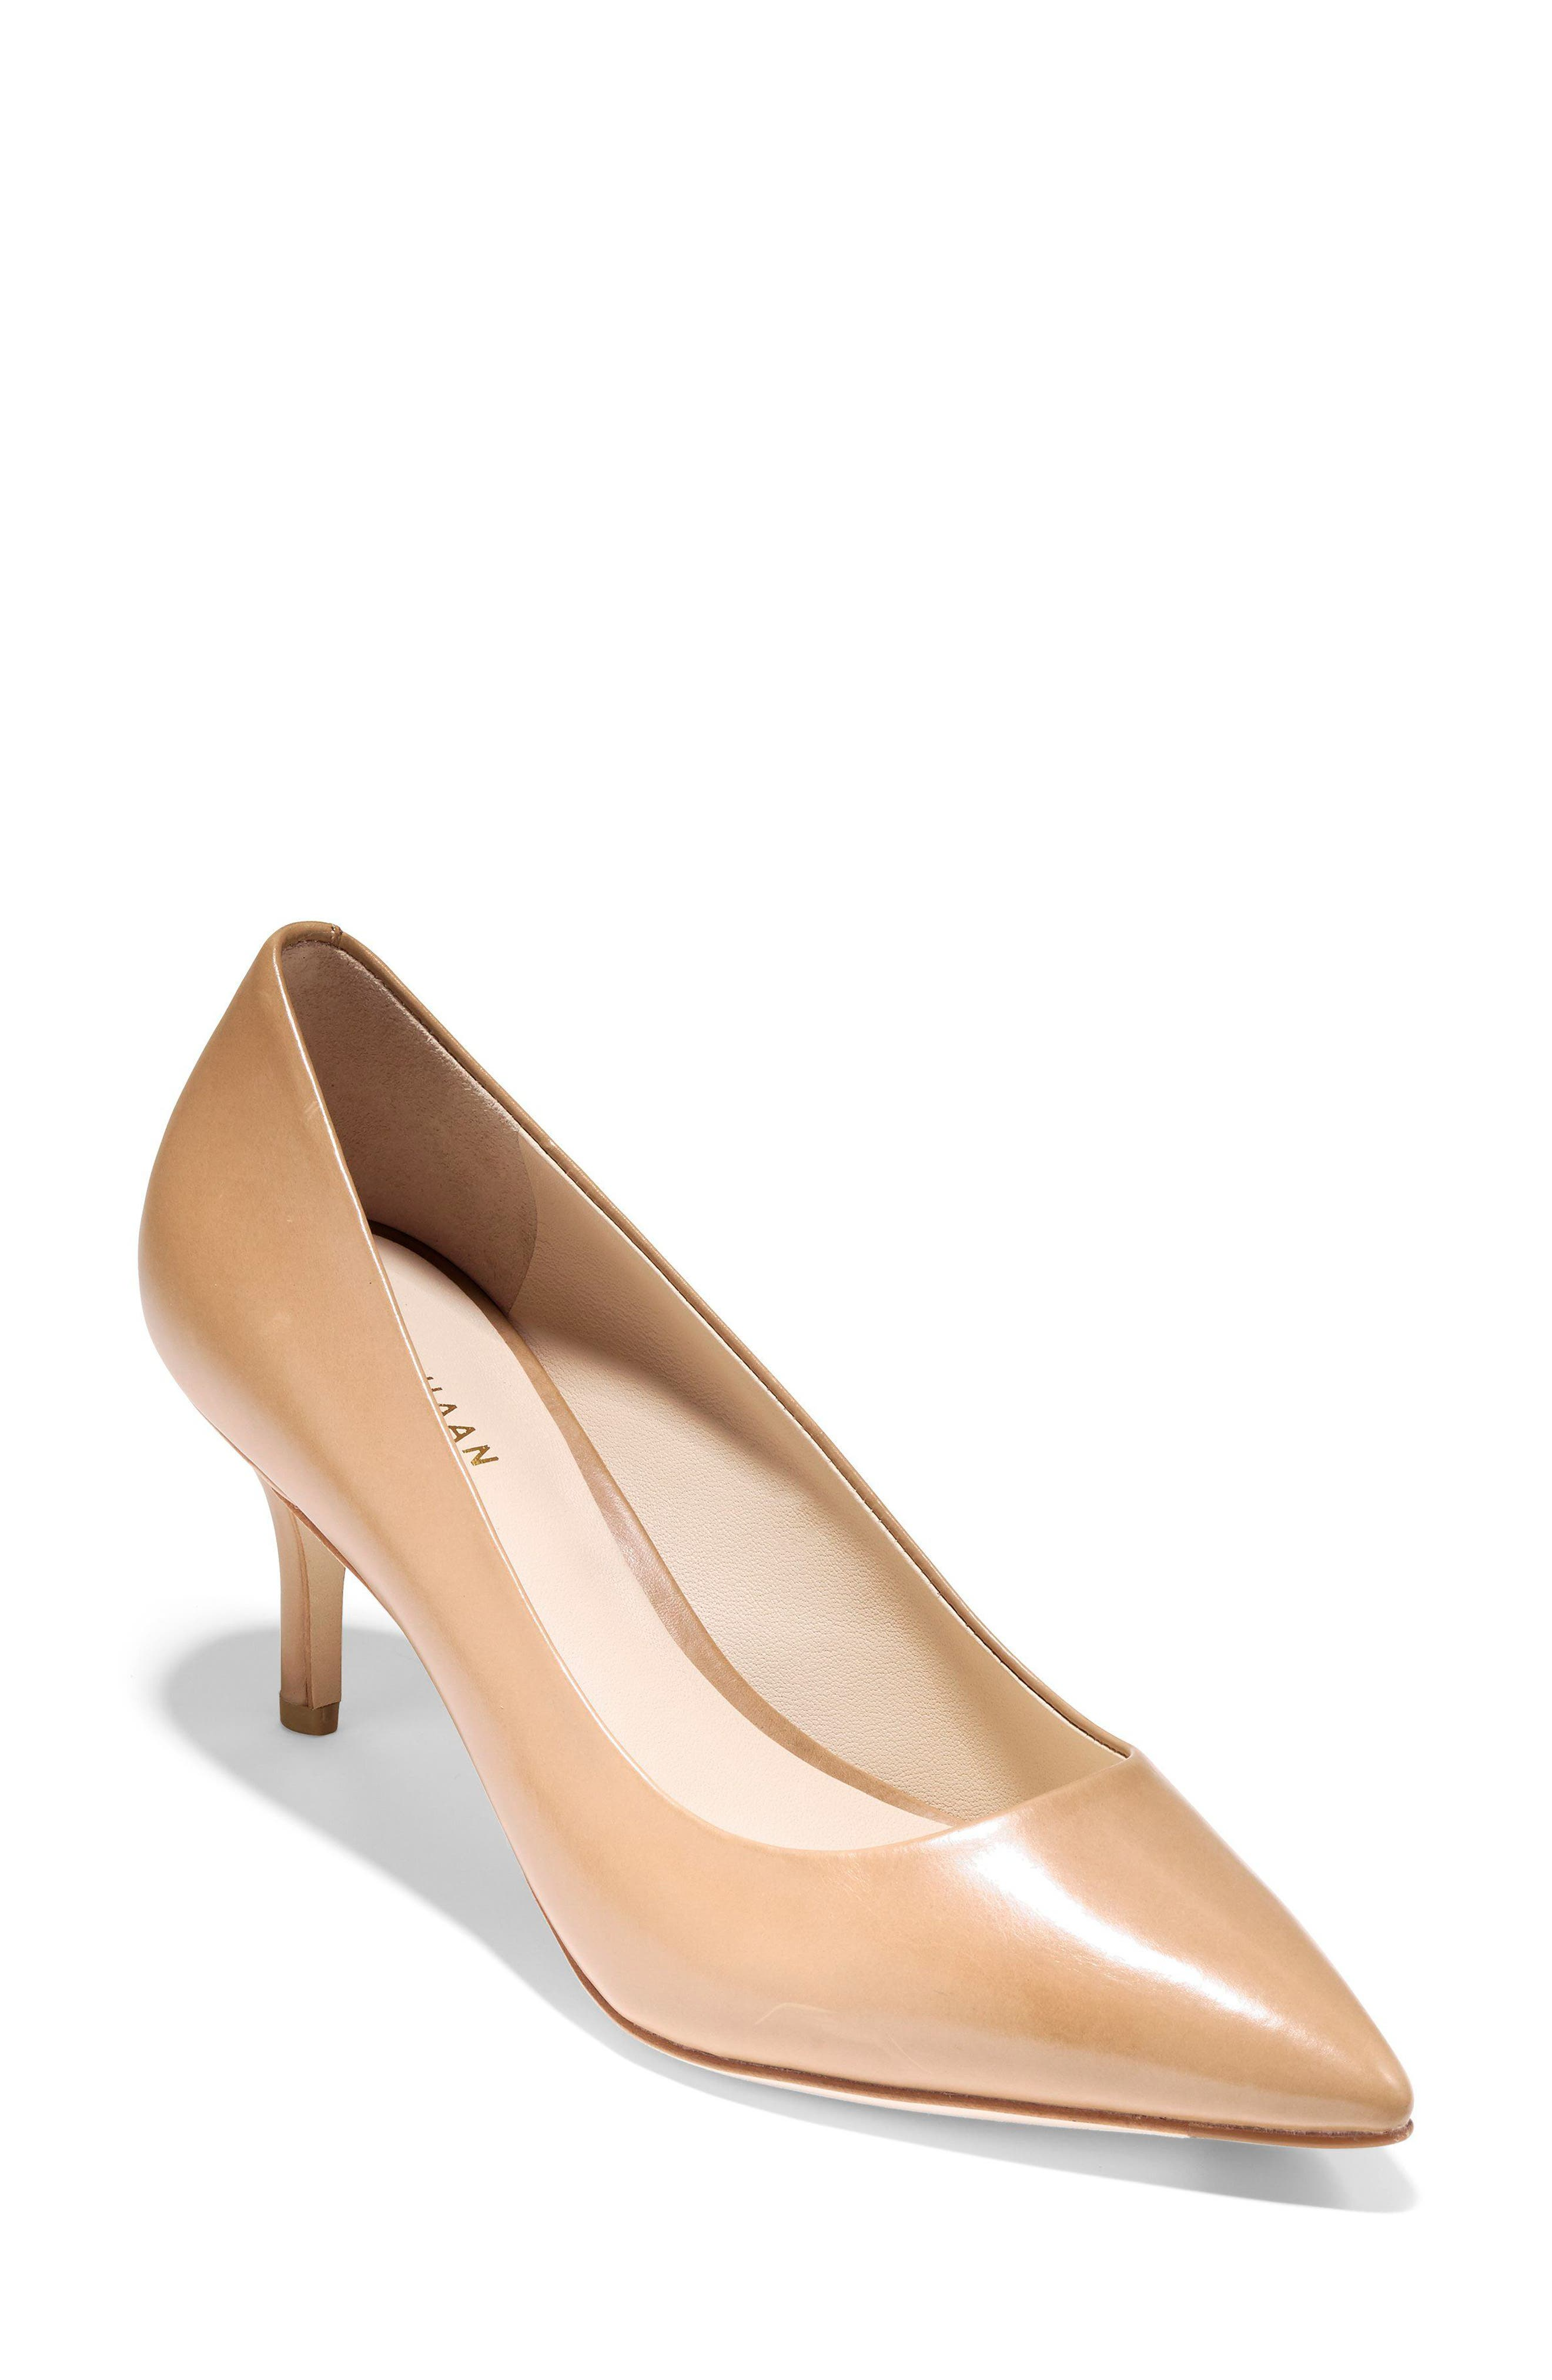 Women'S Vesta Leather Pointed Toe Mid-Heel Pumps in Nude Leather